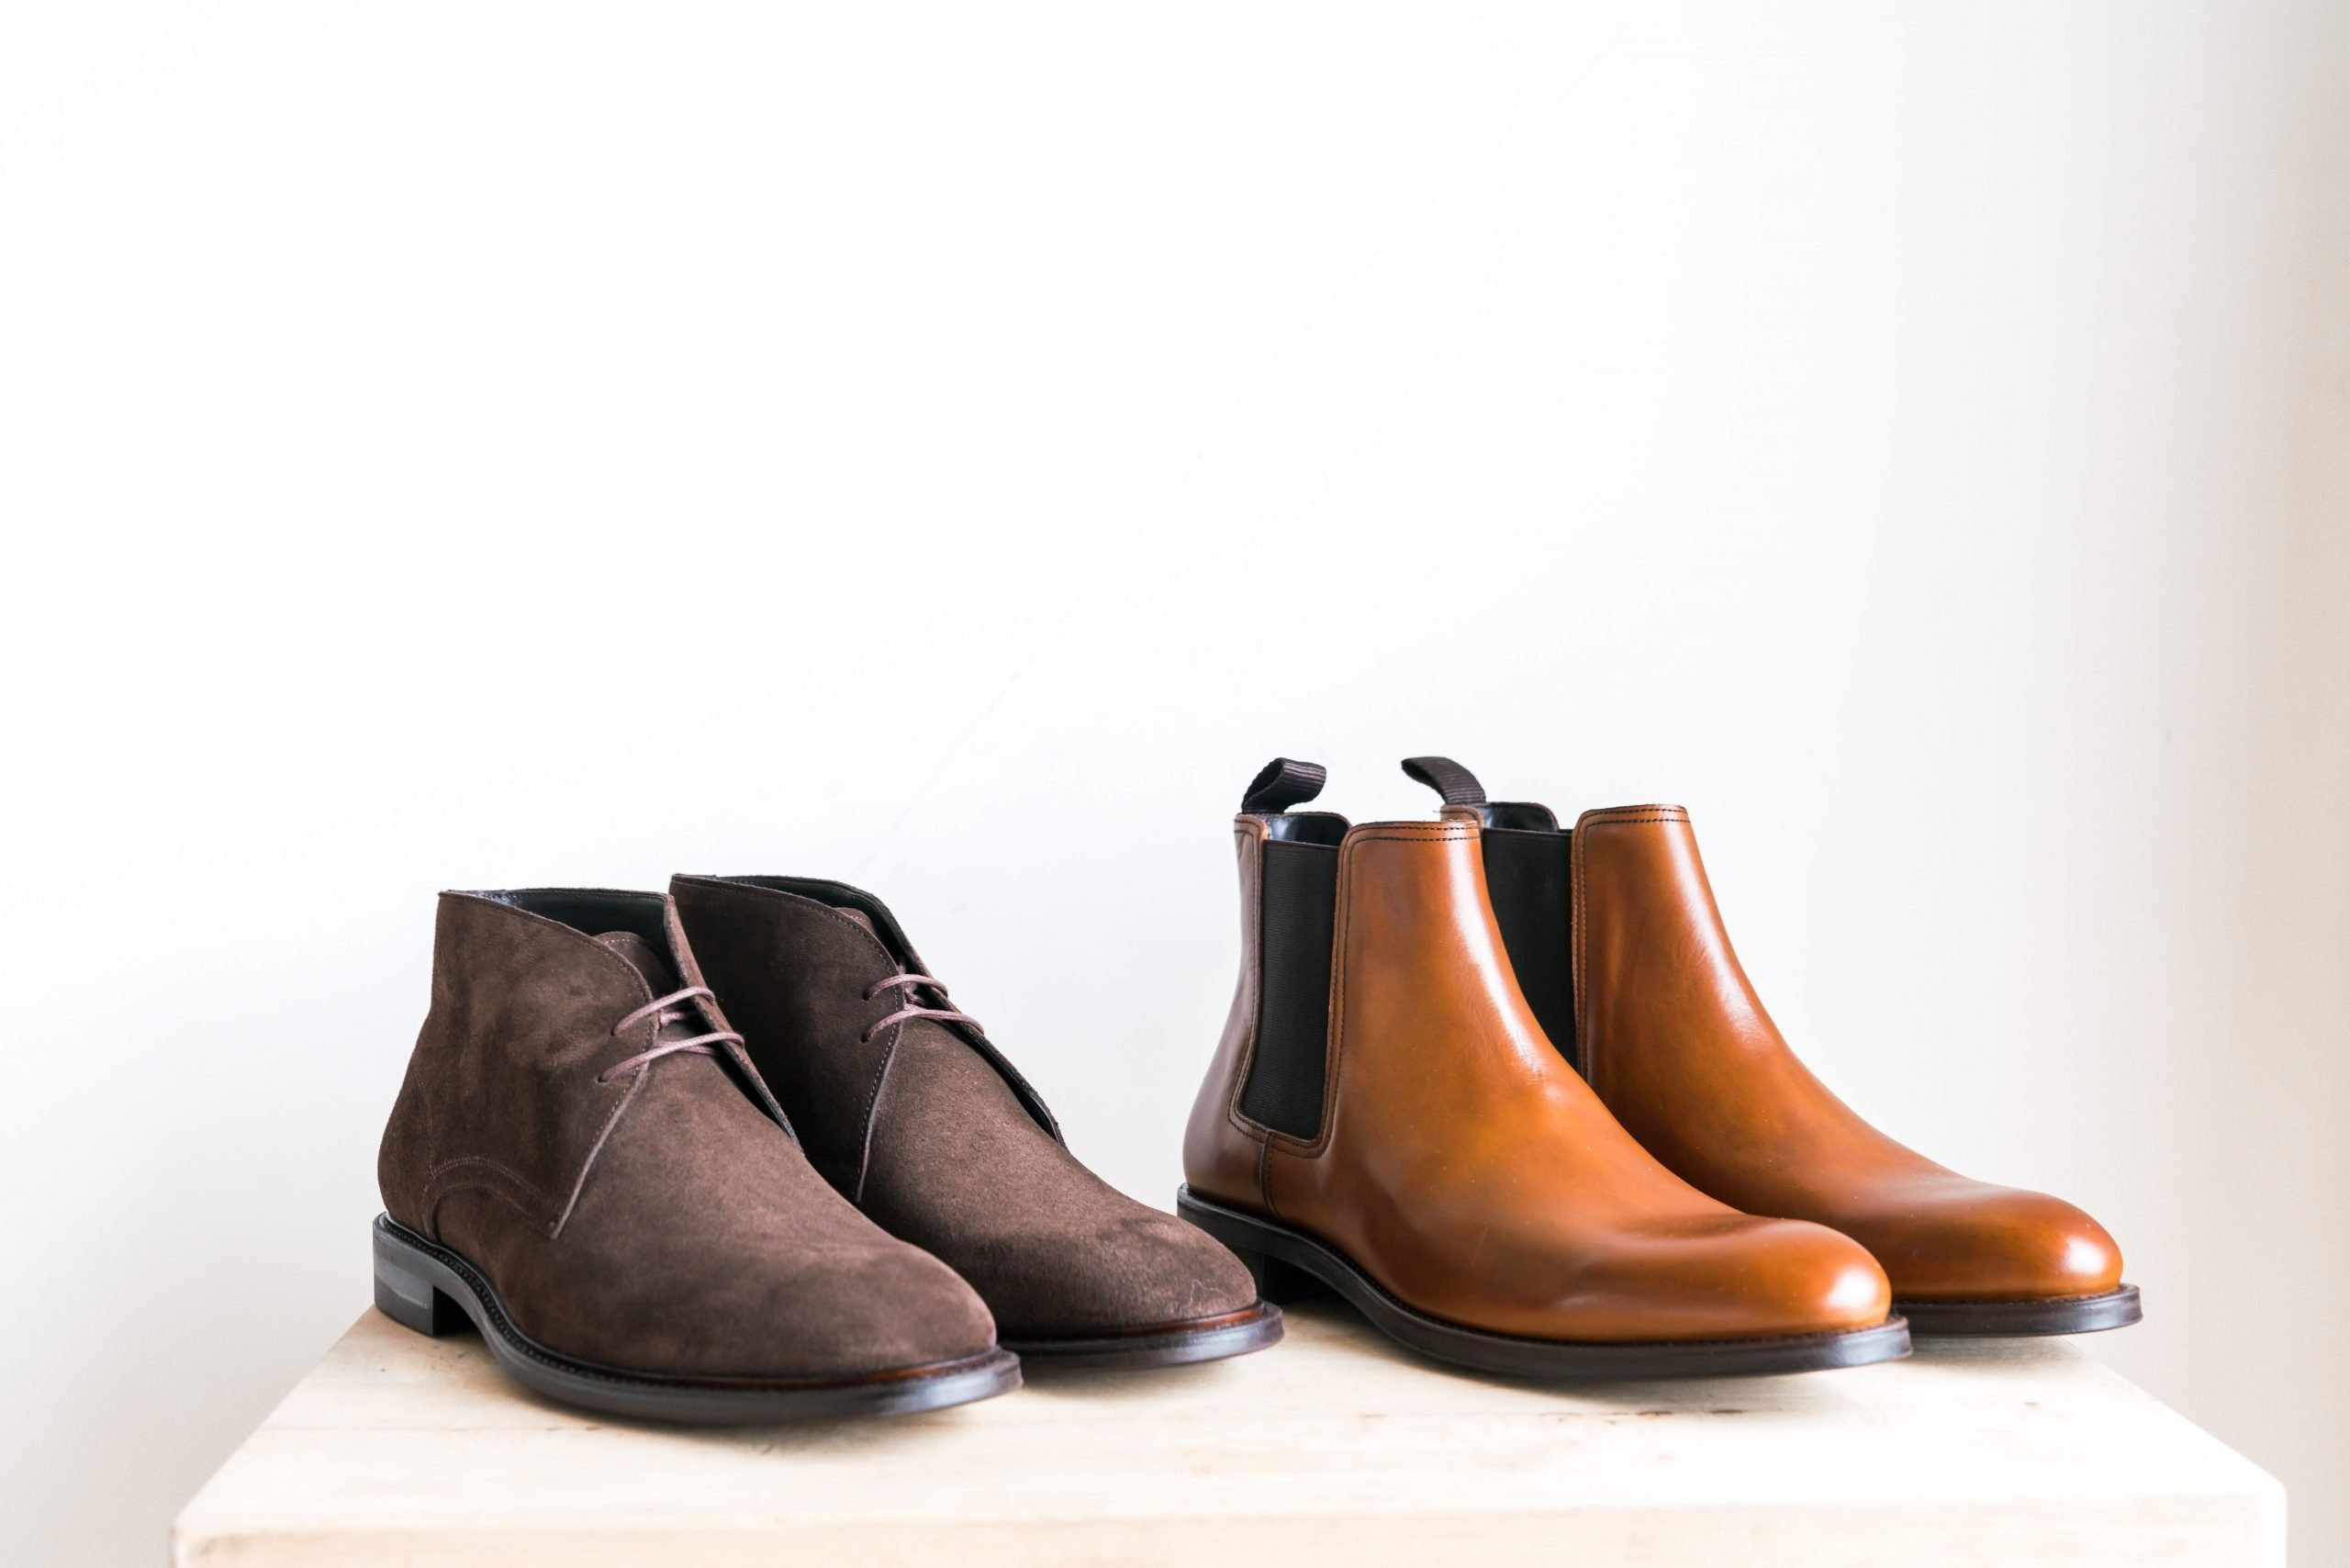 Chelsea Boots and Chukka Boots